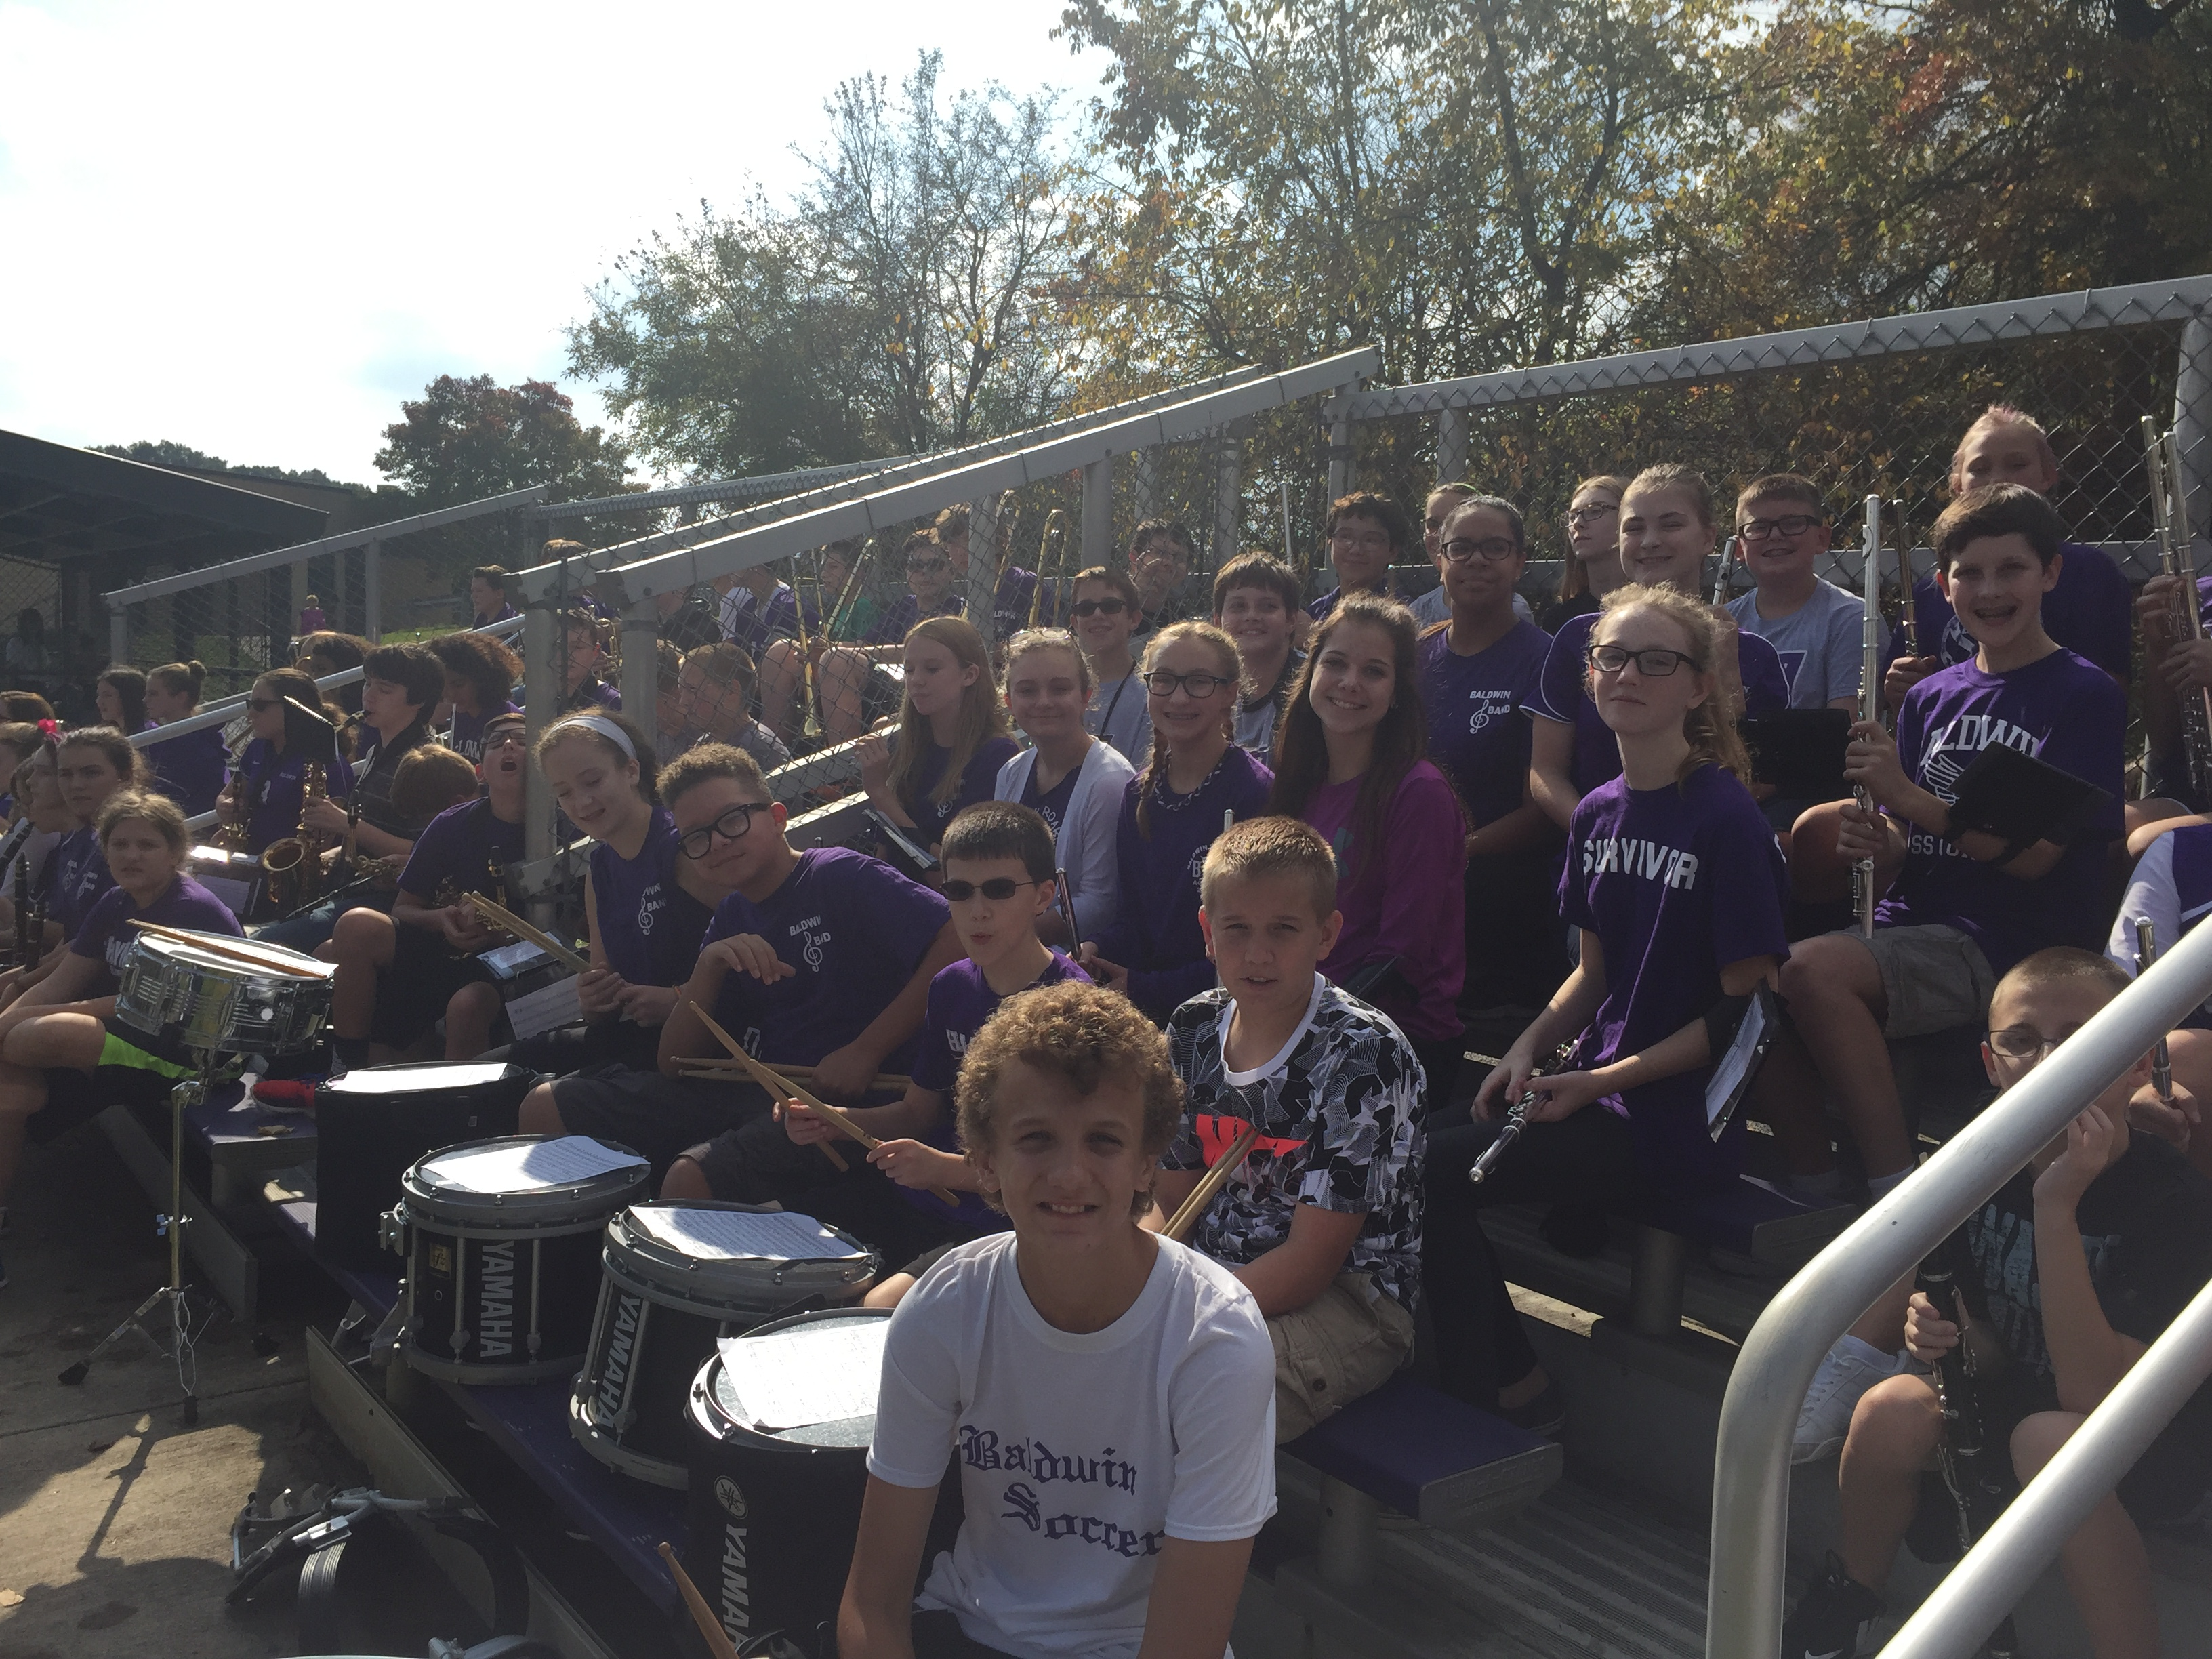 HMS band getting ready for the pep rally.